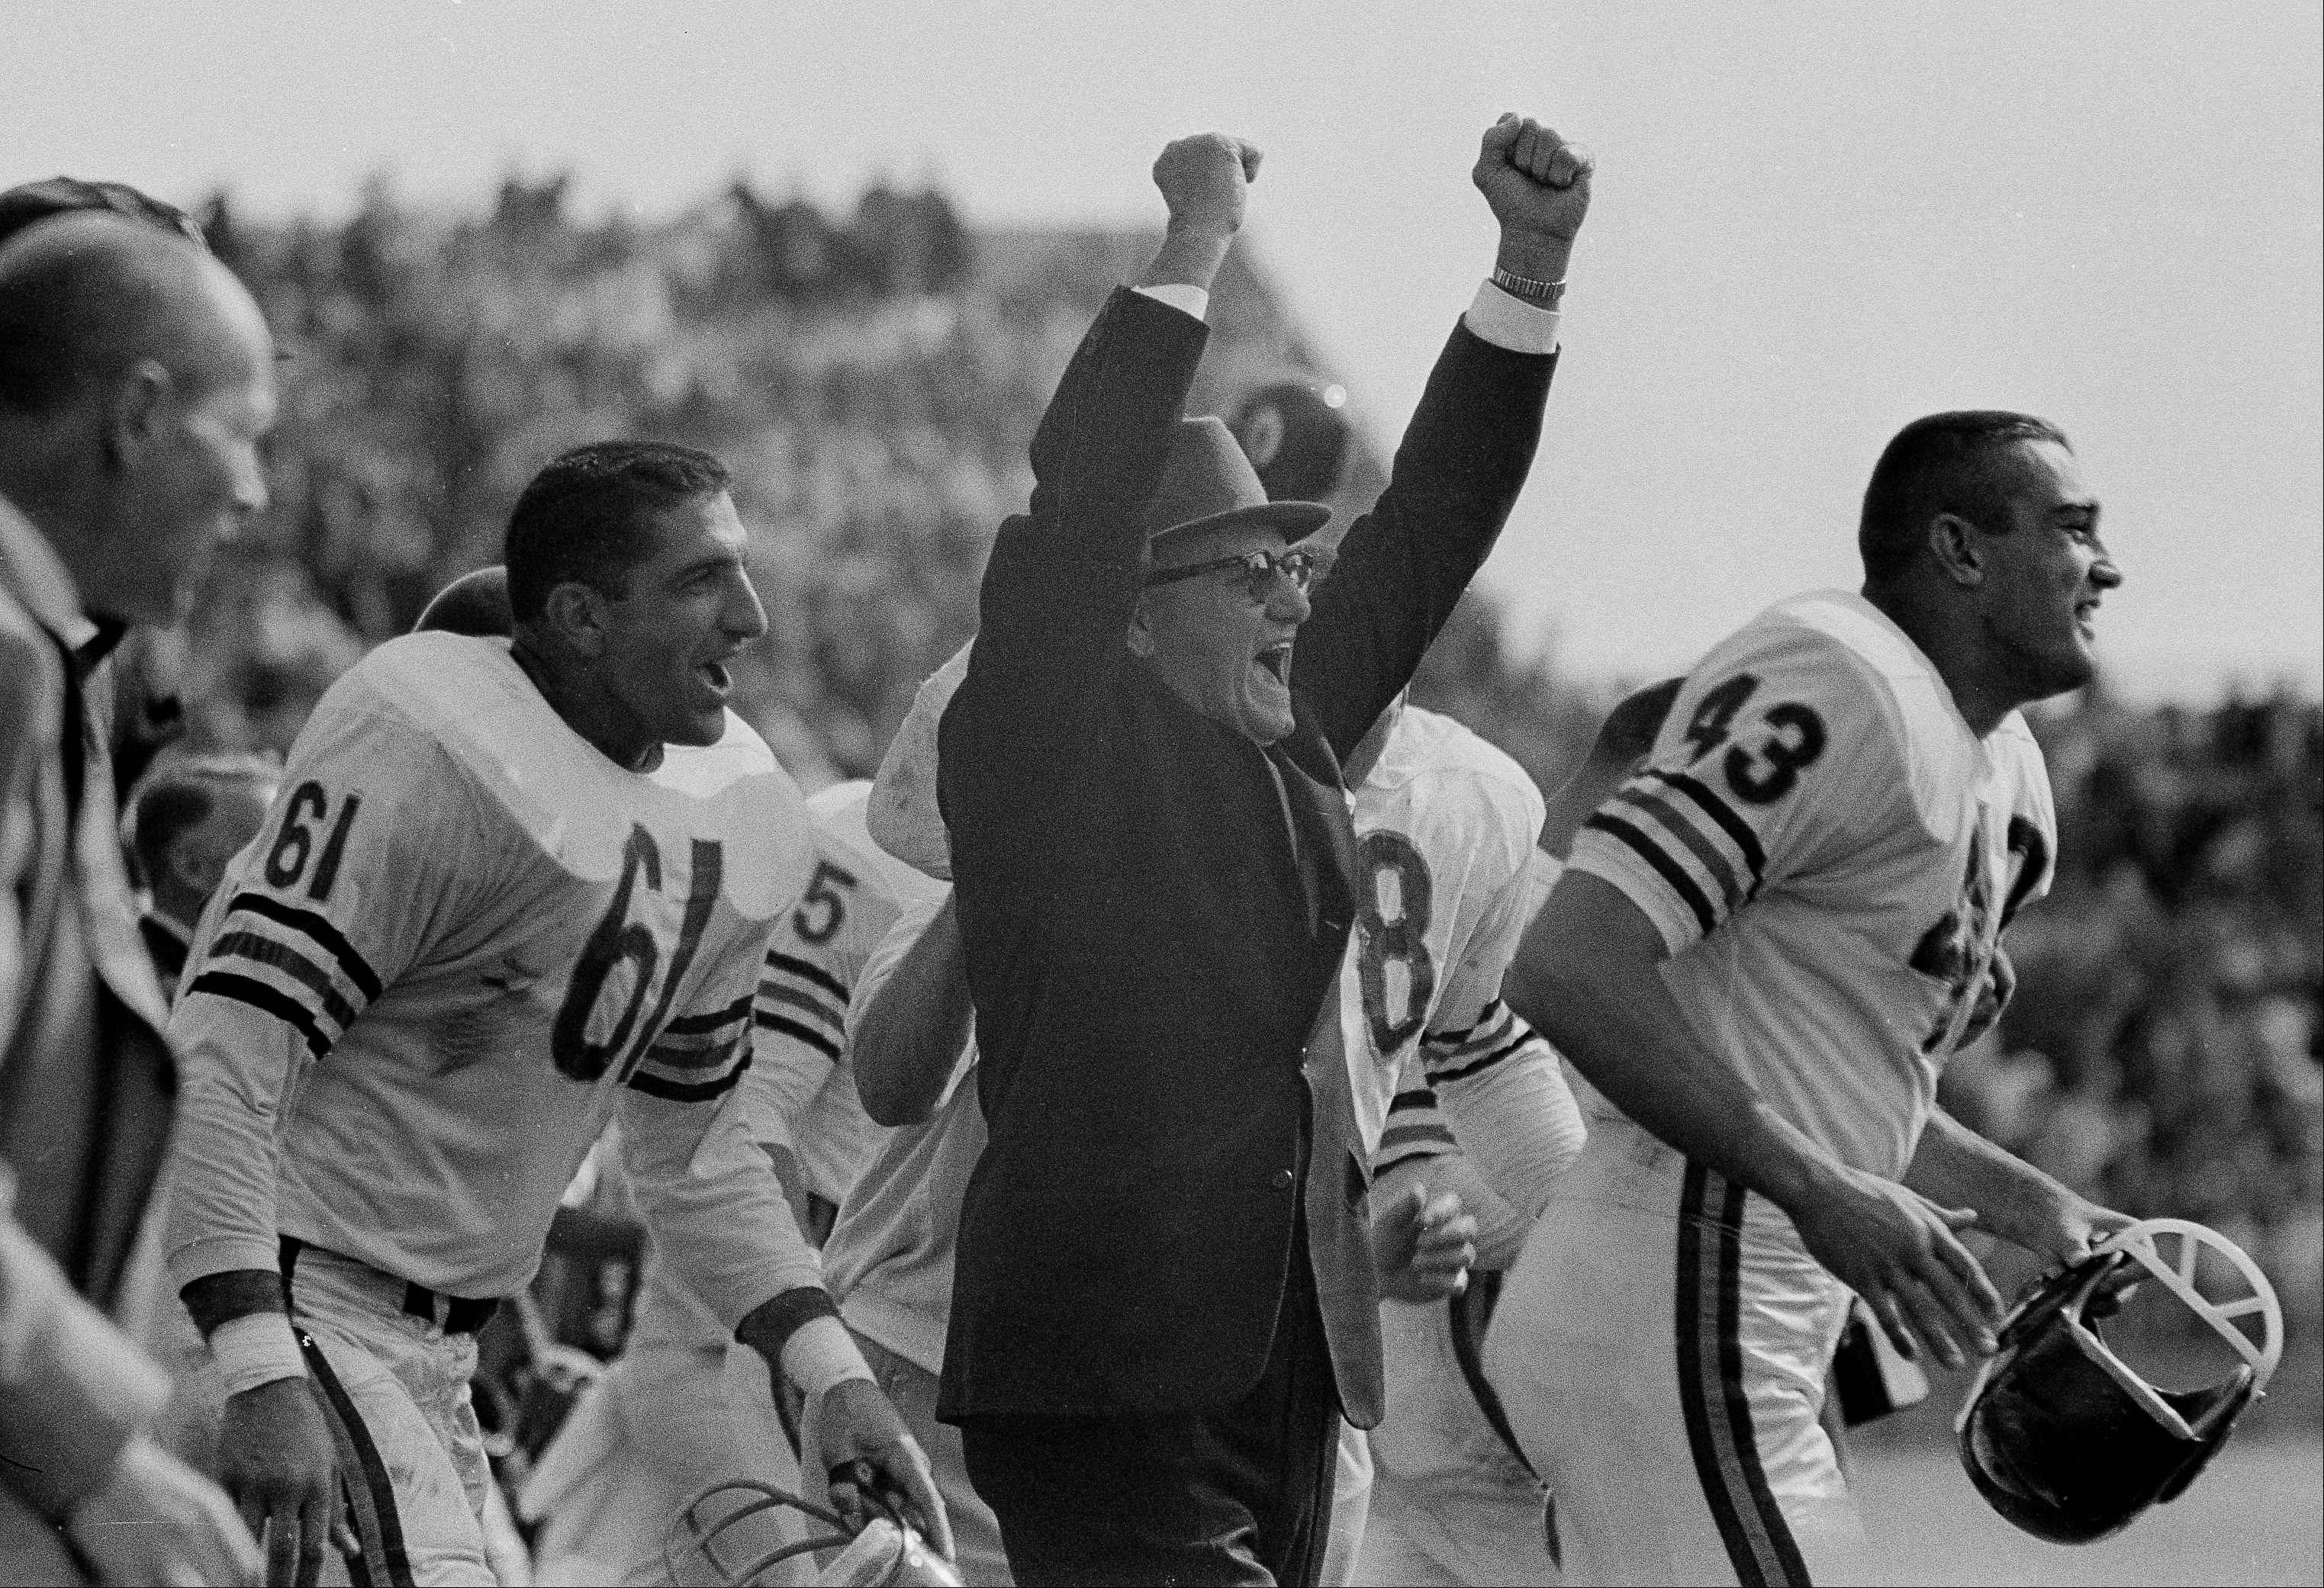 Chicago Bears head coach George Halas and linebacker Bill George celebrate the last second of the game as their team defeated the Green Bay Packers, 10-3, on Sept. 15, 1963. The Bears went on to win the 1963 NFL title over the New York Giants.